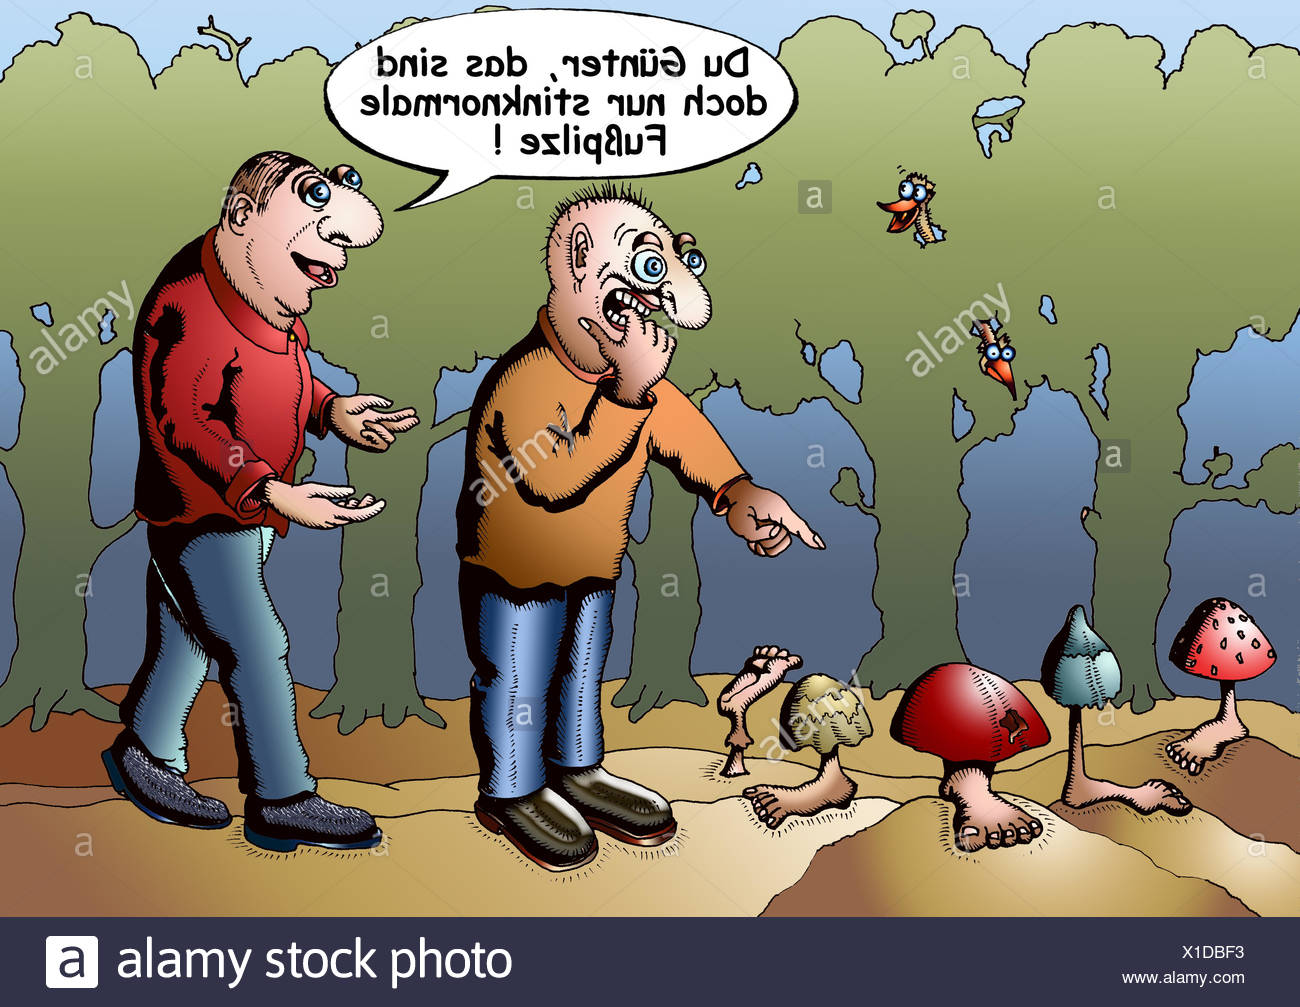 Image of: Glasbergen Health Humour Witty Pinterest Health Humour Witty Stock Photo 276274967 Alamy